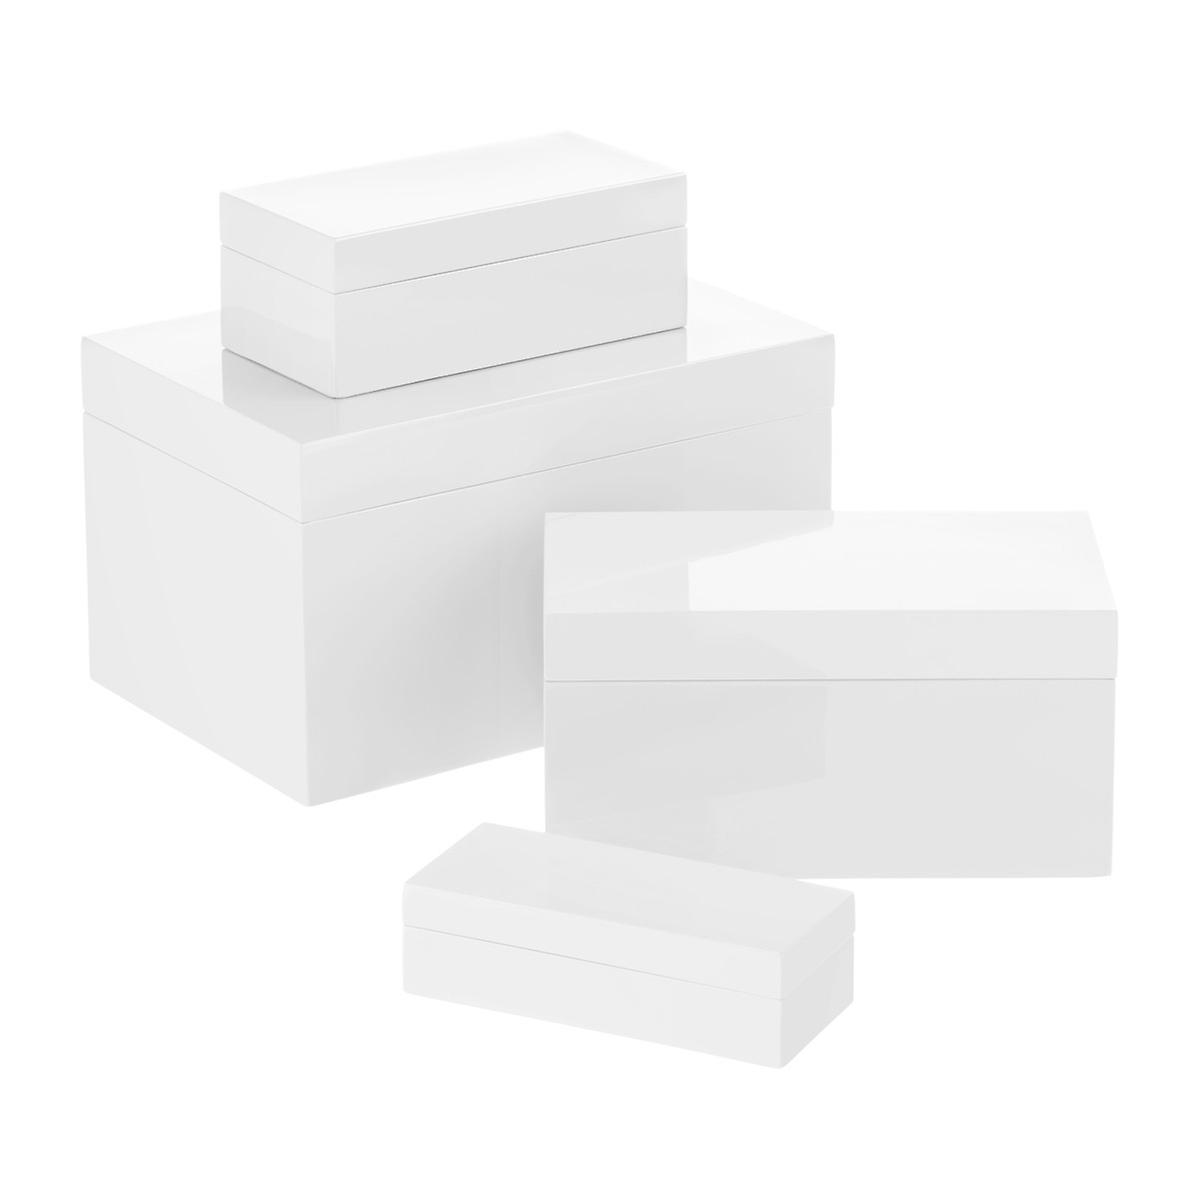 0cd29e745 White Lacquered Storage Boxes | The Container Store